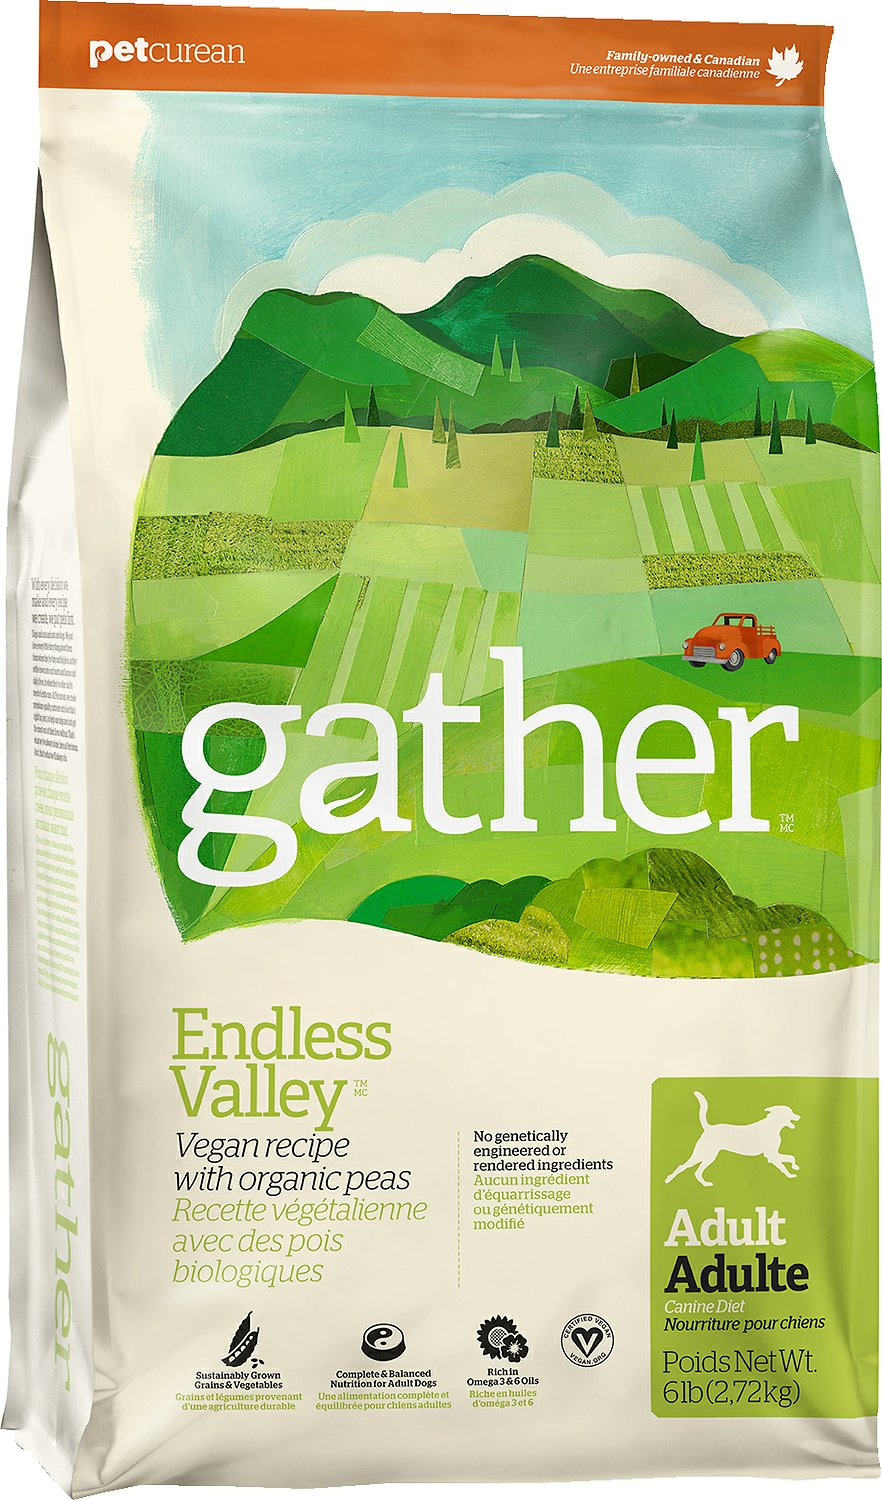 Gather Endless Valley Vegan Adult Dry Dog Food Image